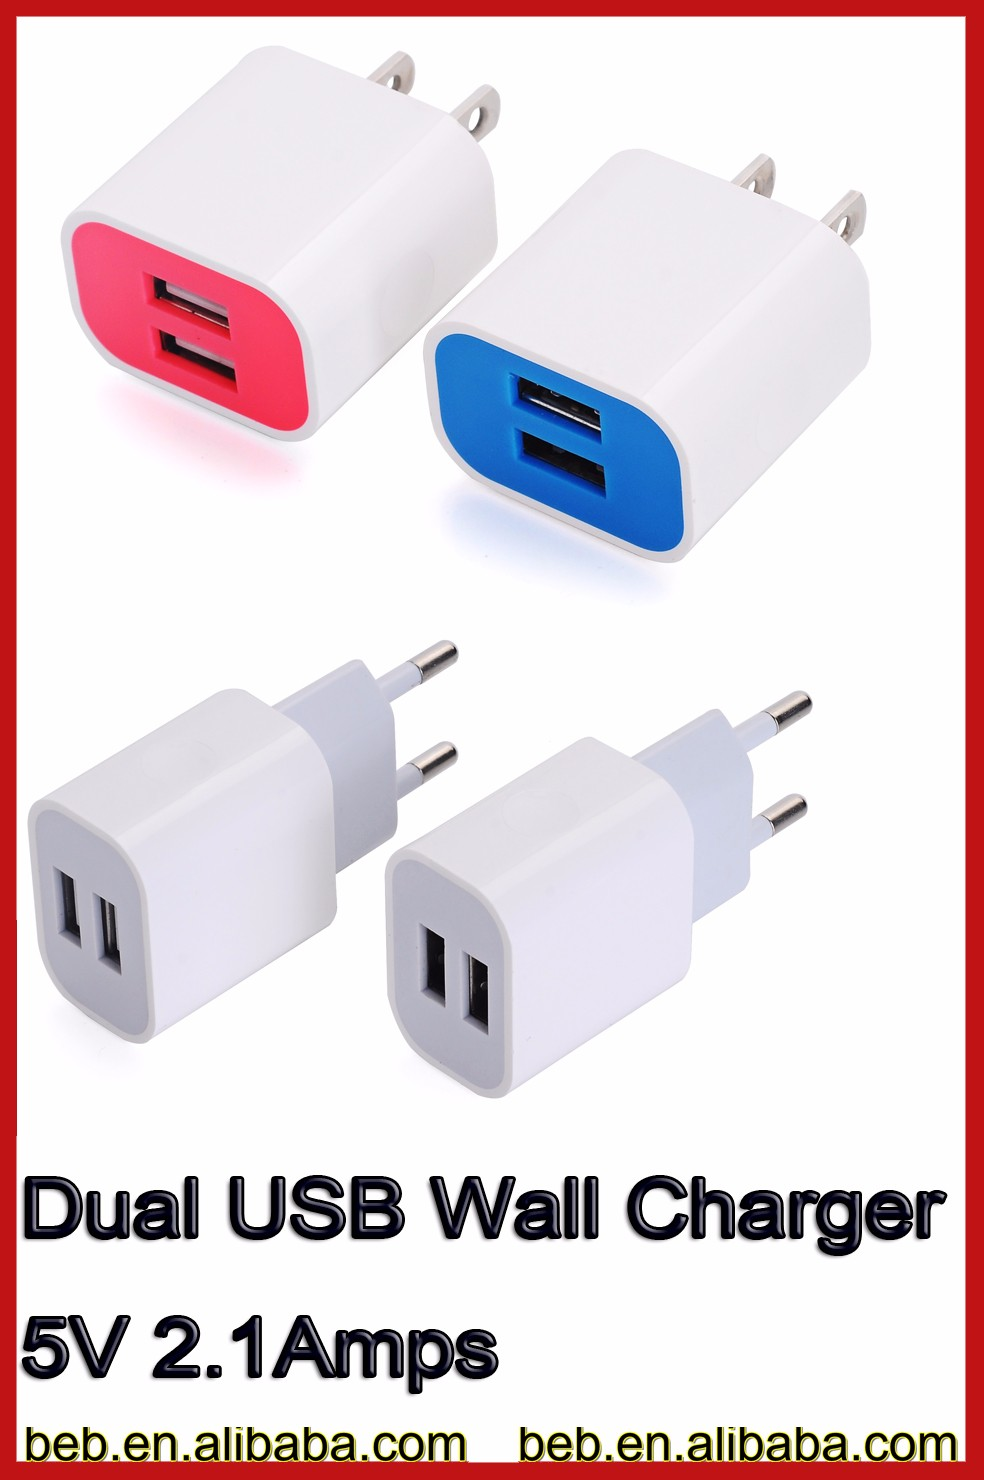 5v 2000ma wall charger for iphone samsung usb wall charger on hot promotion